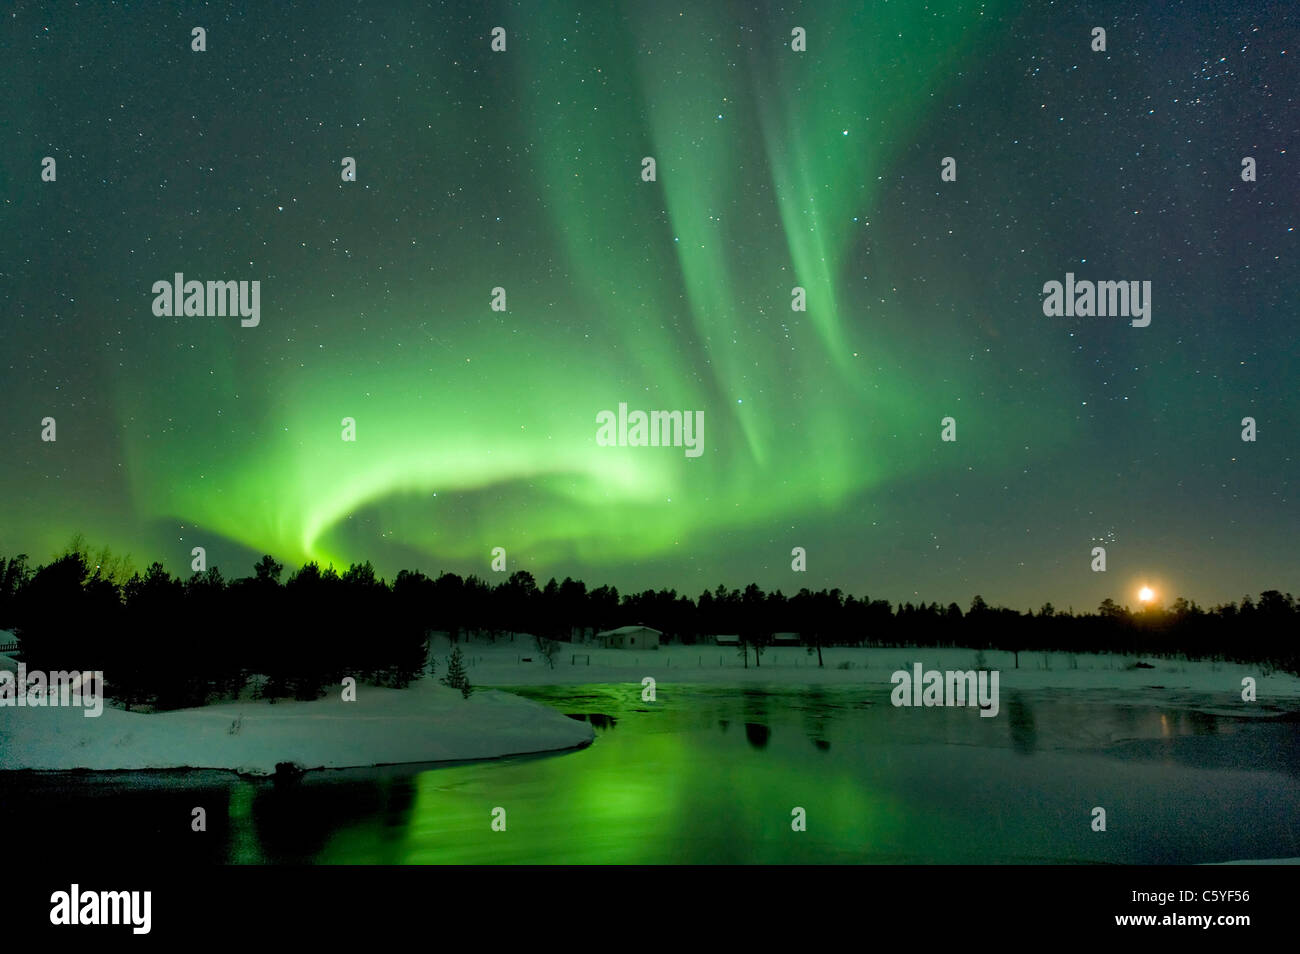 Northern Lights, also known as Aurora Borealis at moonset near Inari. Lapland, Finland. - Stock Image